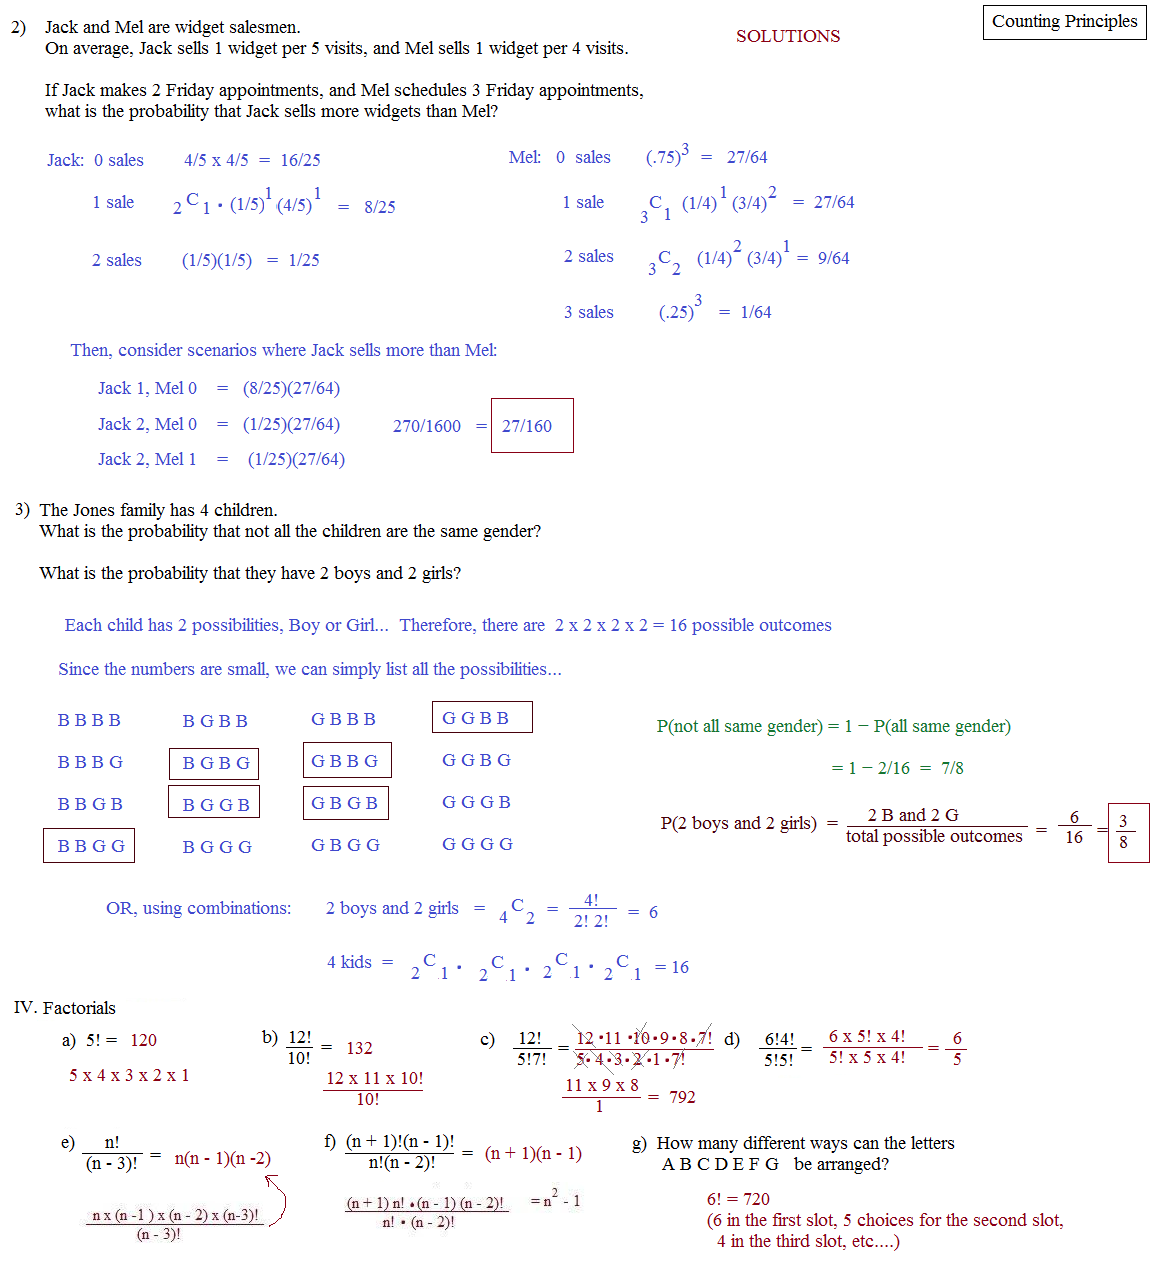 Worksheets Permutations And Combinations Worksheet With Answers math plane counting principles permutations and combinations principle quiz 2 solutions